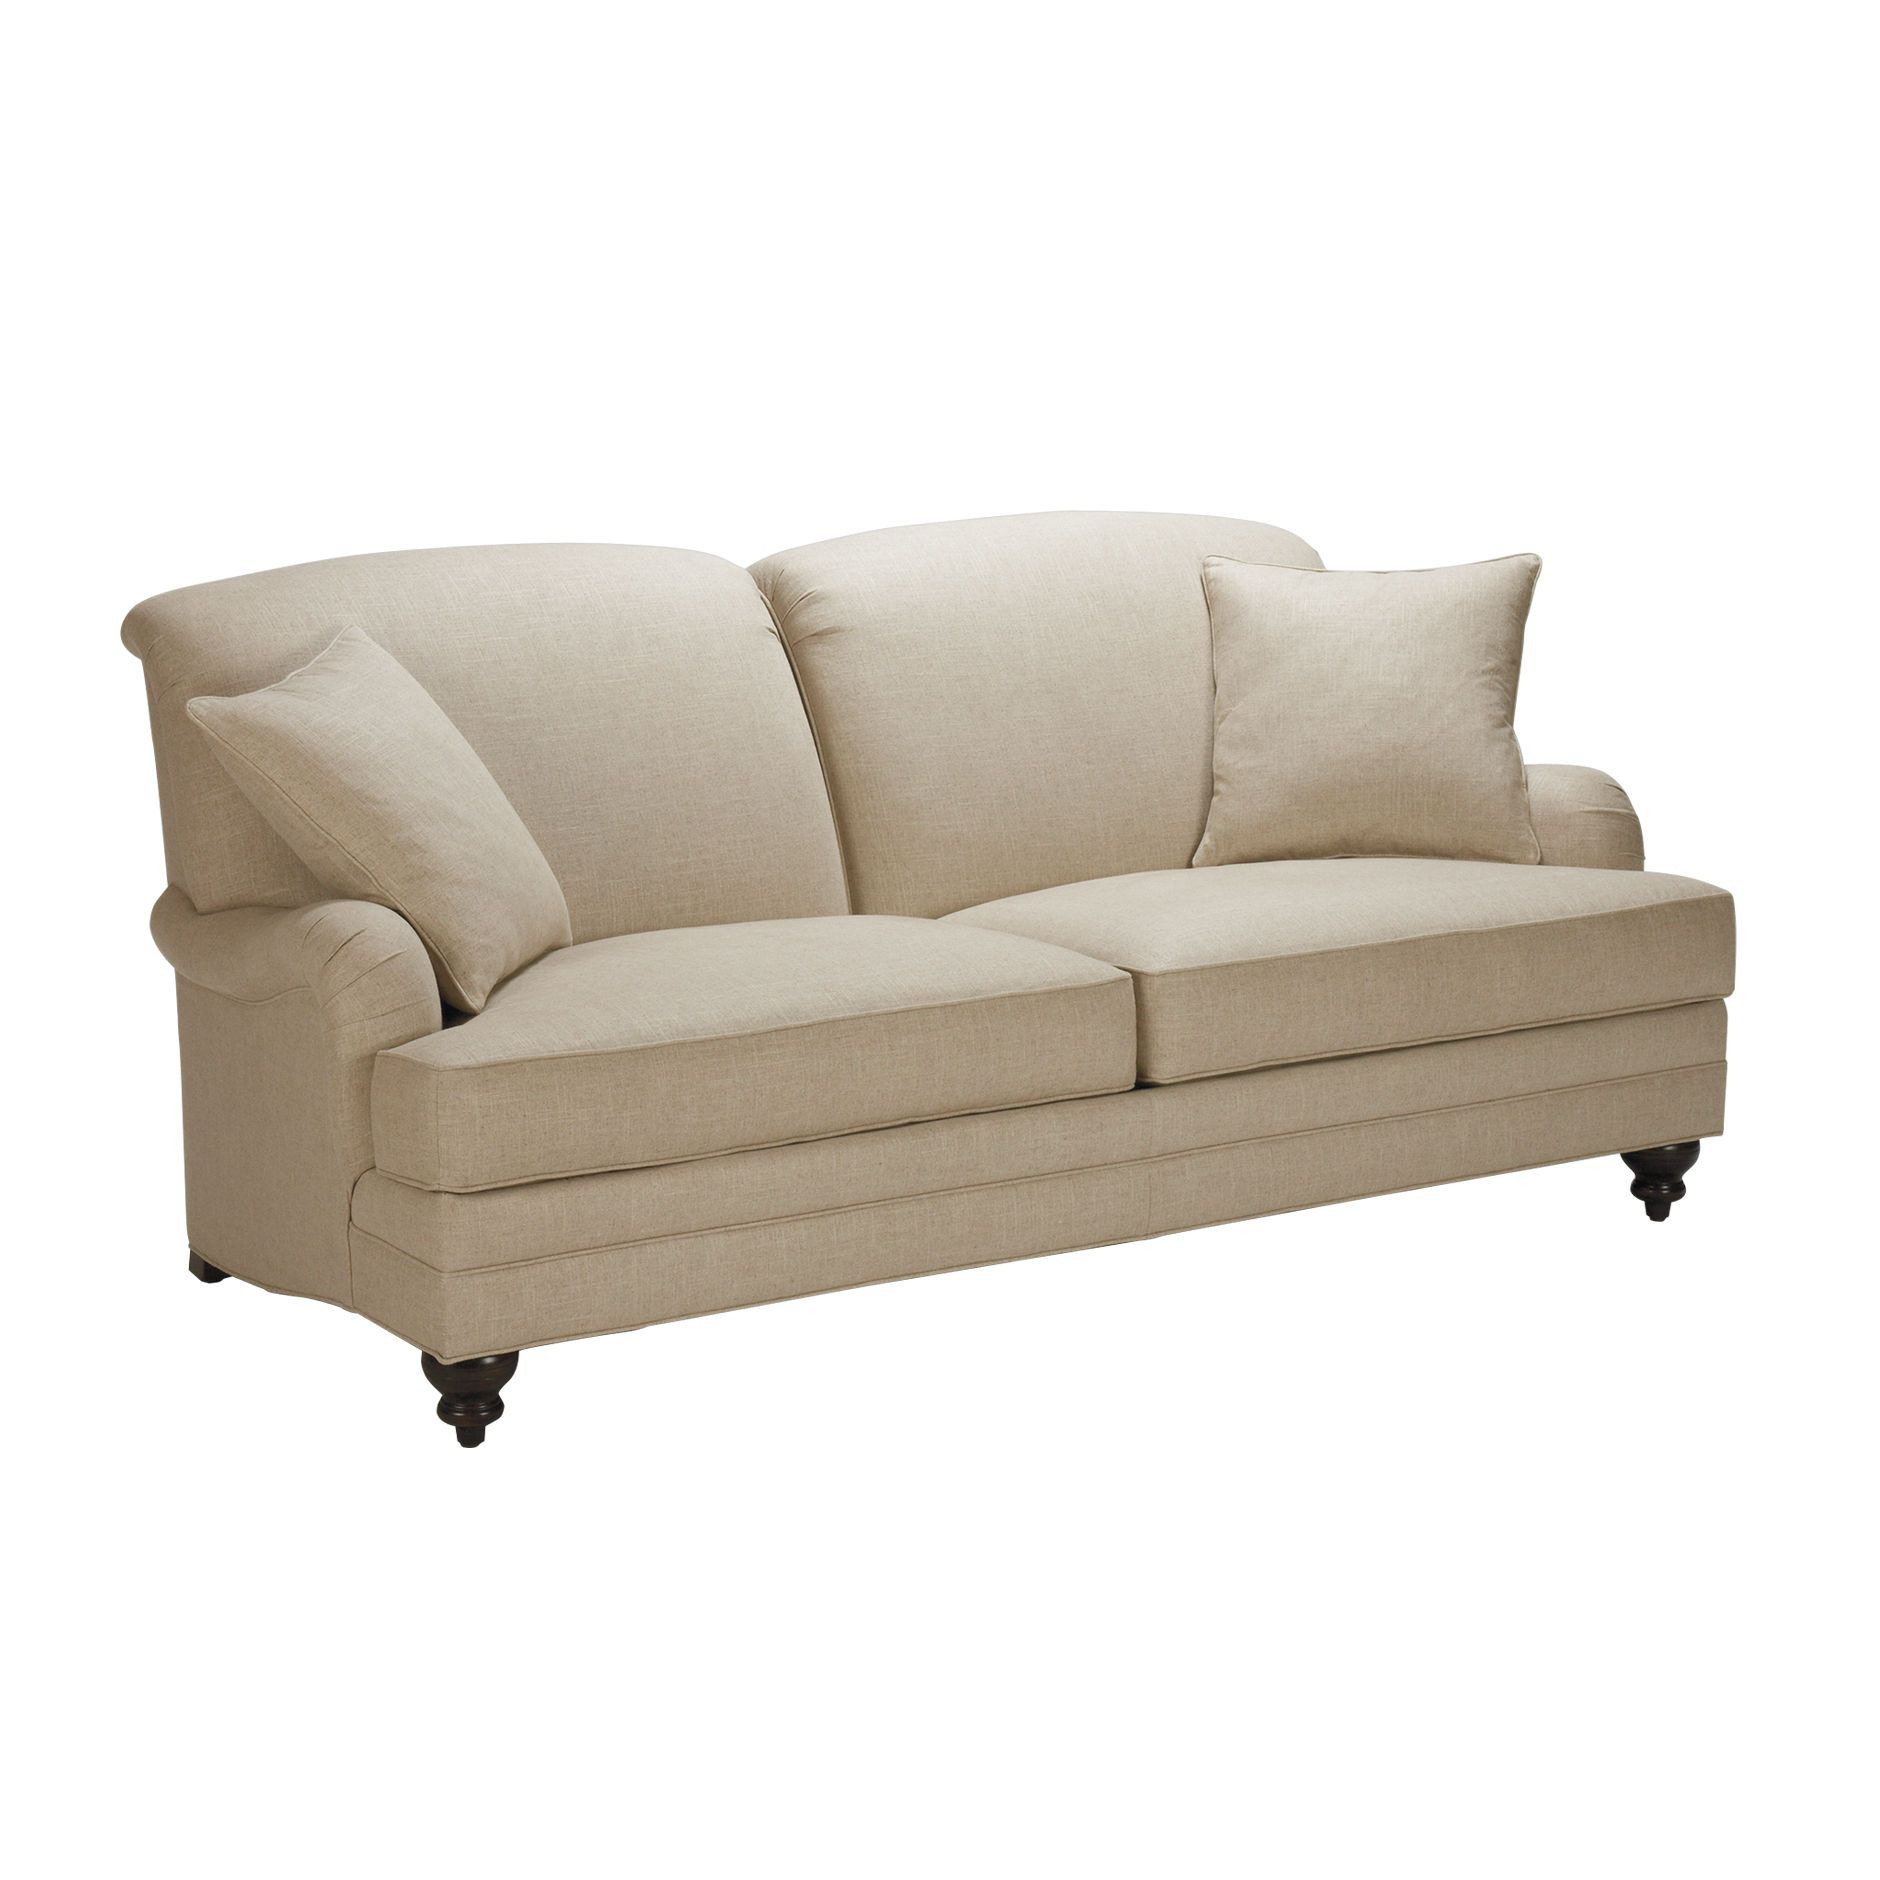 Madison Sofas Ethan Allen 79 Or 85 W X 35 H X 39 D Tight Back Spool Feet English Styling Seating Area 207774 Sofa Comfy Sofa Chair Tight Back Sofa